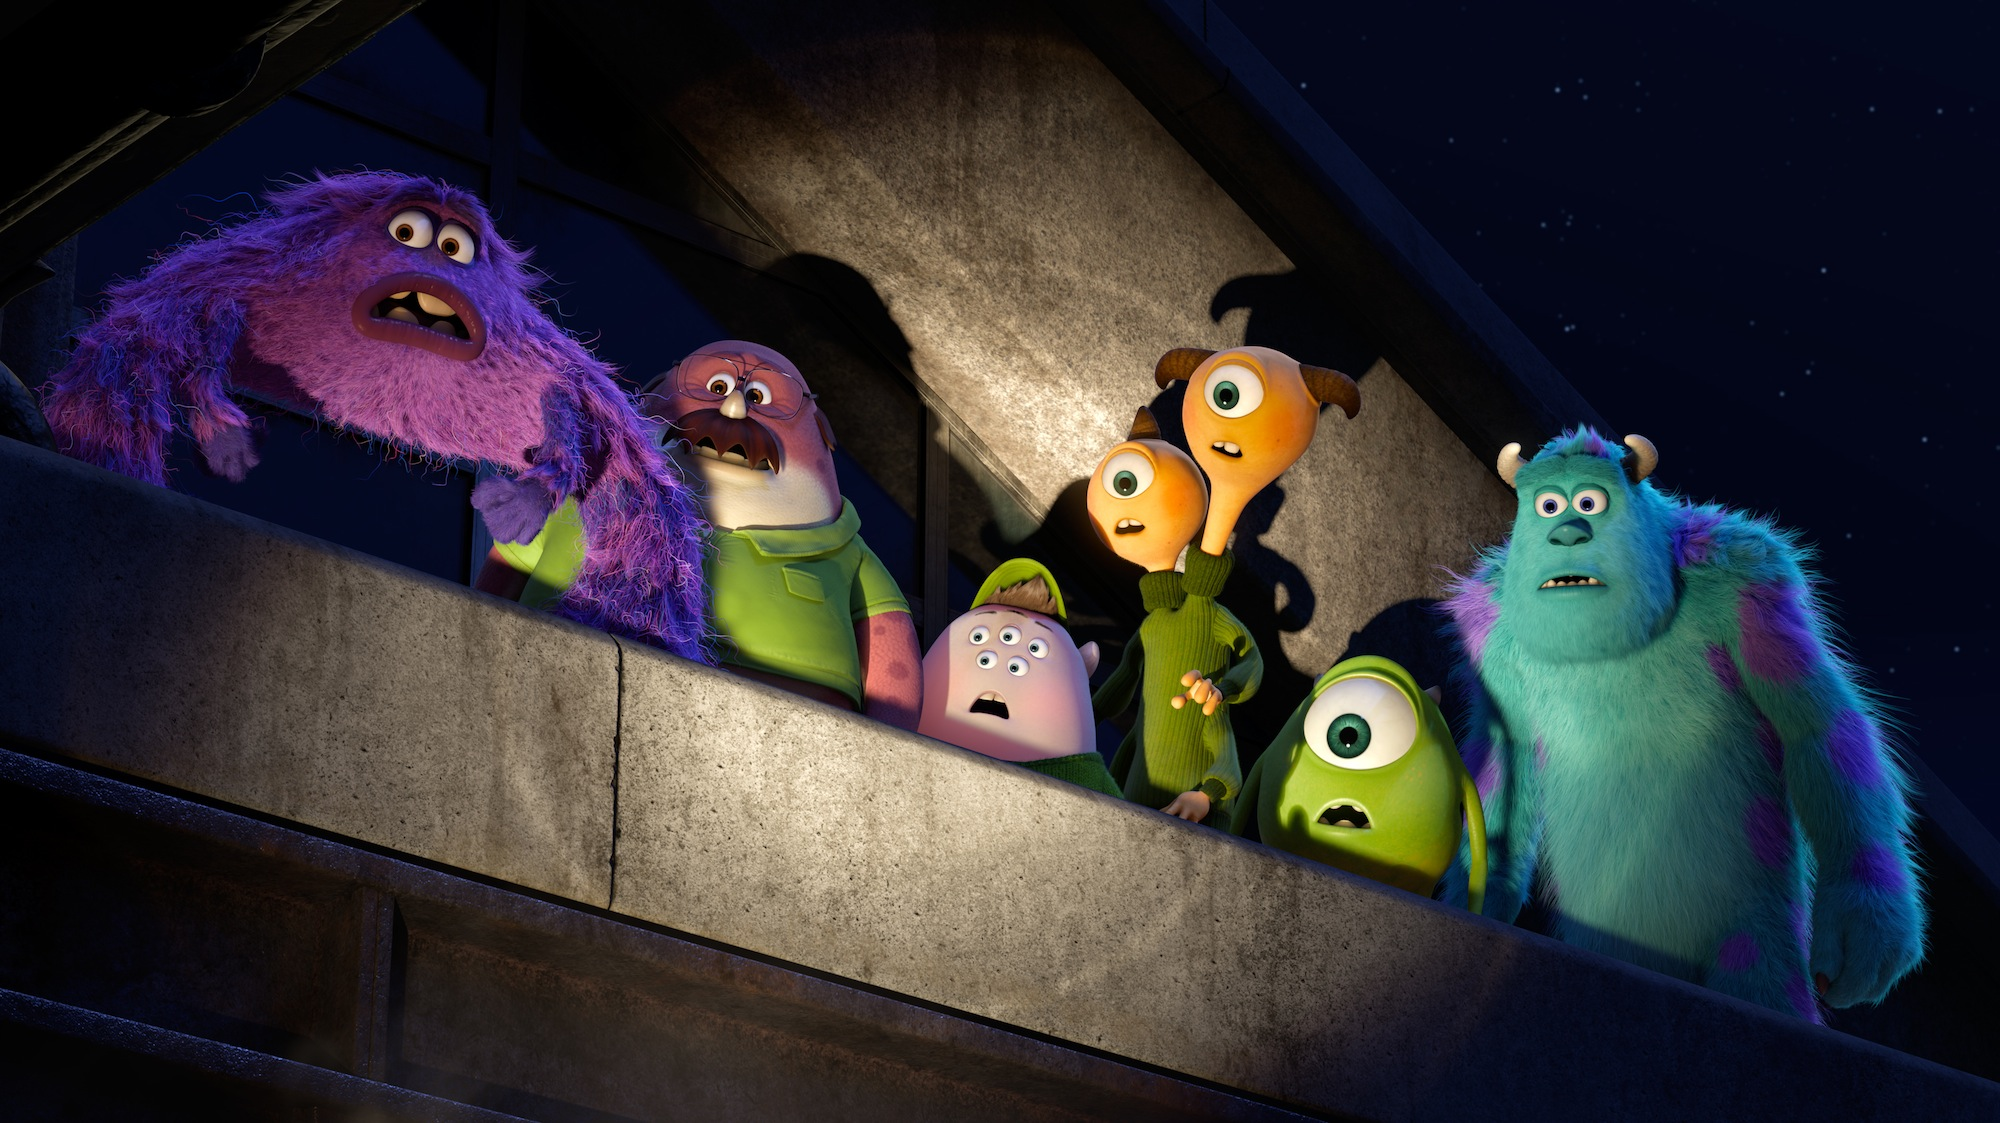 The Pixar Perspective on 2013 and Beyond